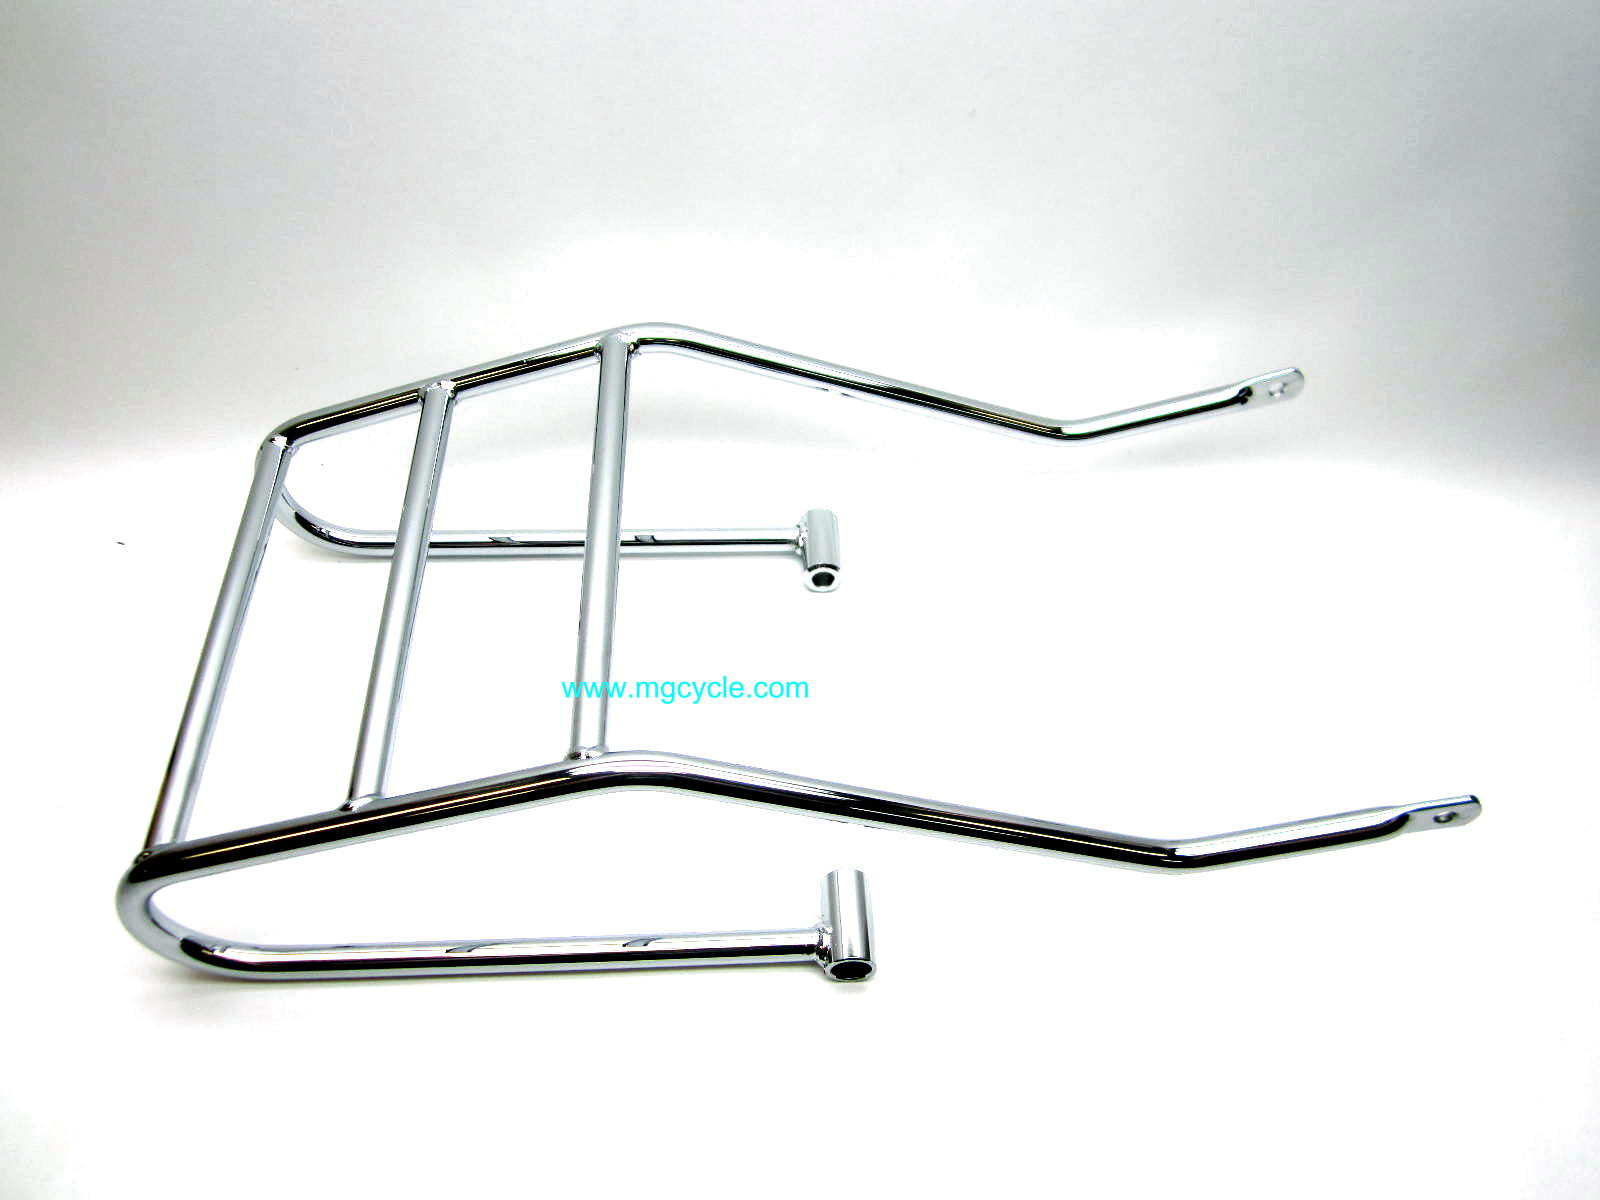 luggage rack 850 LeMans, LeMans II, CX100